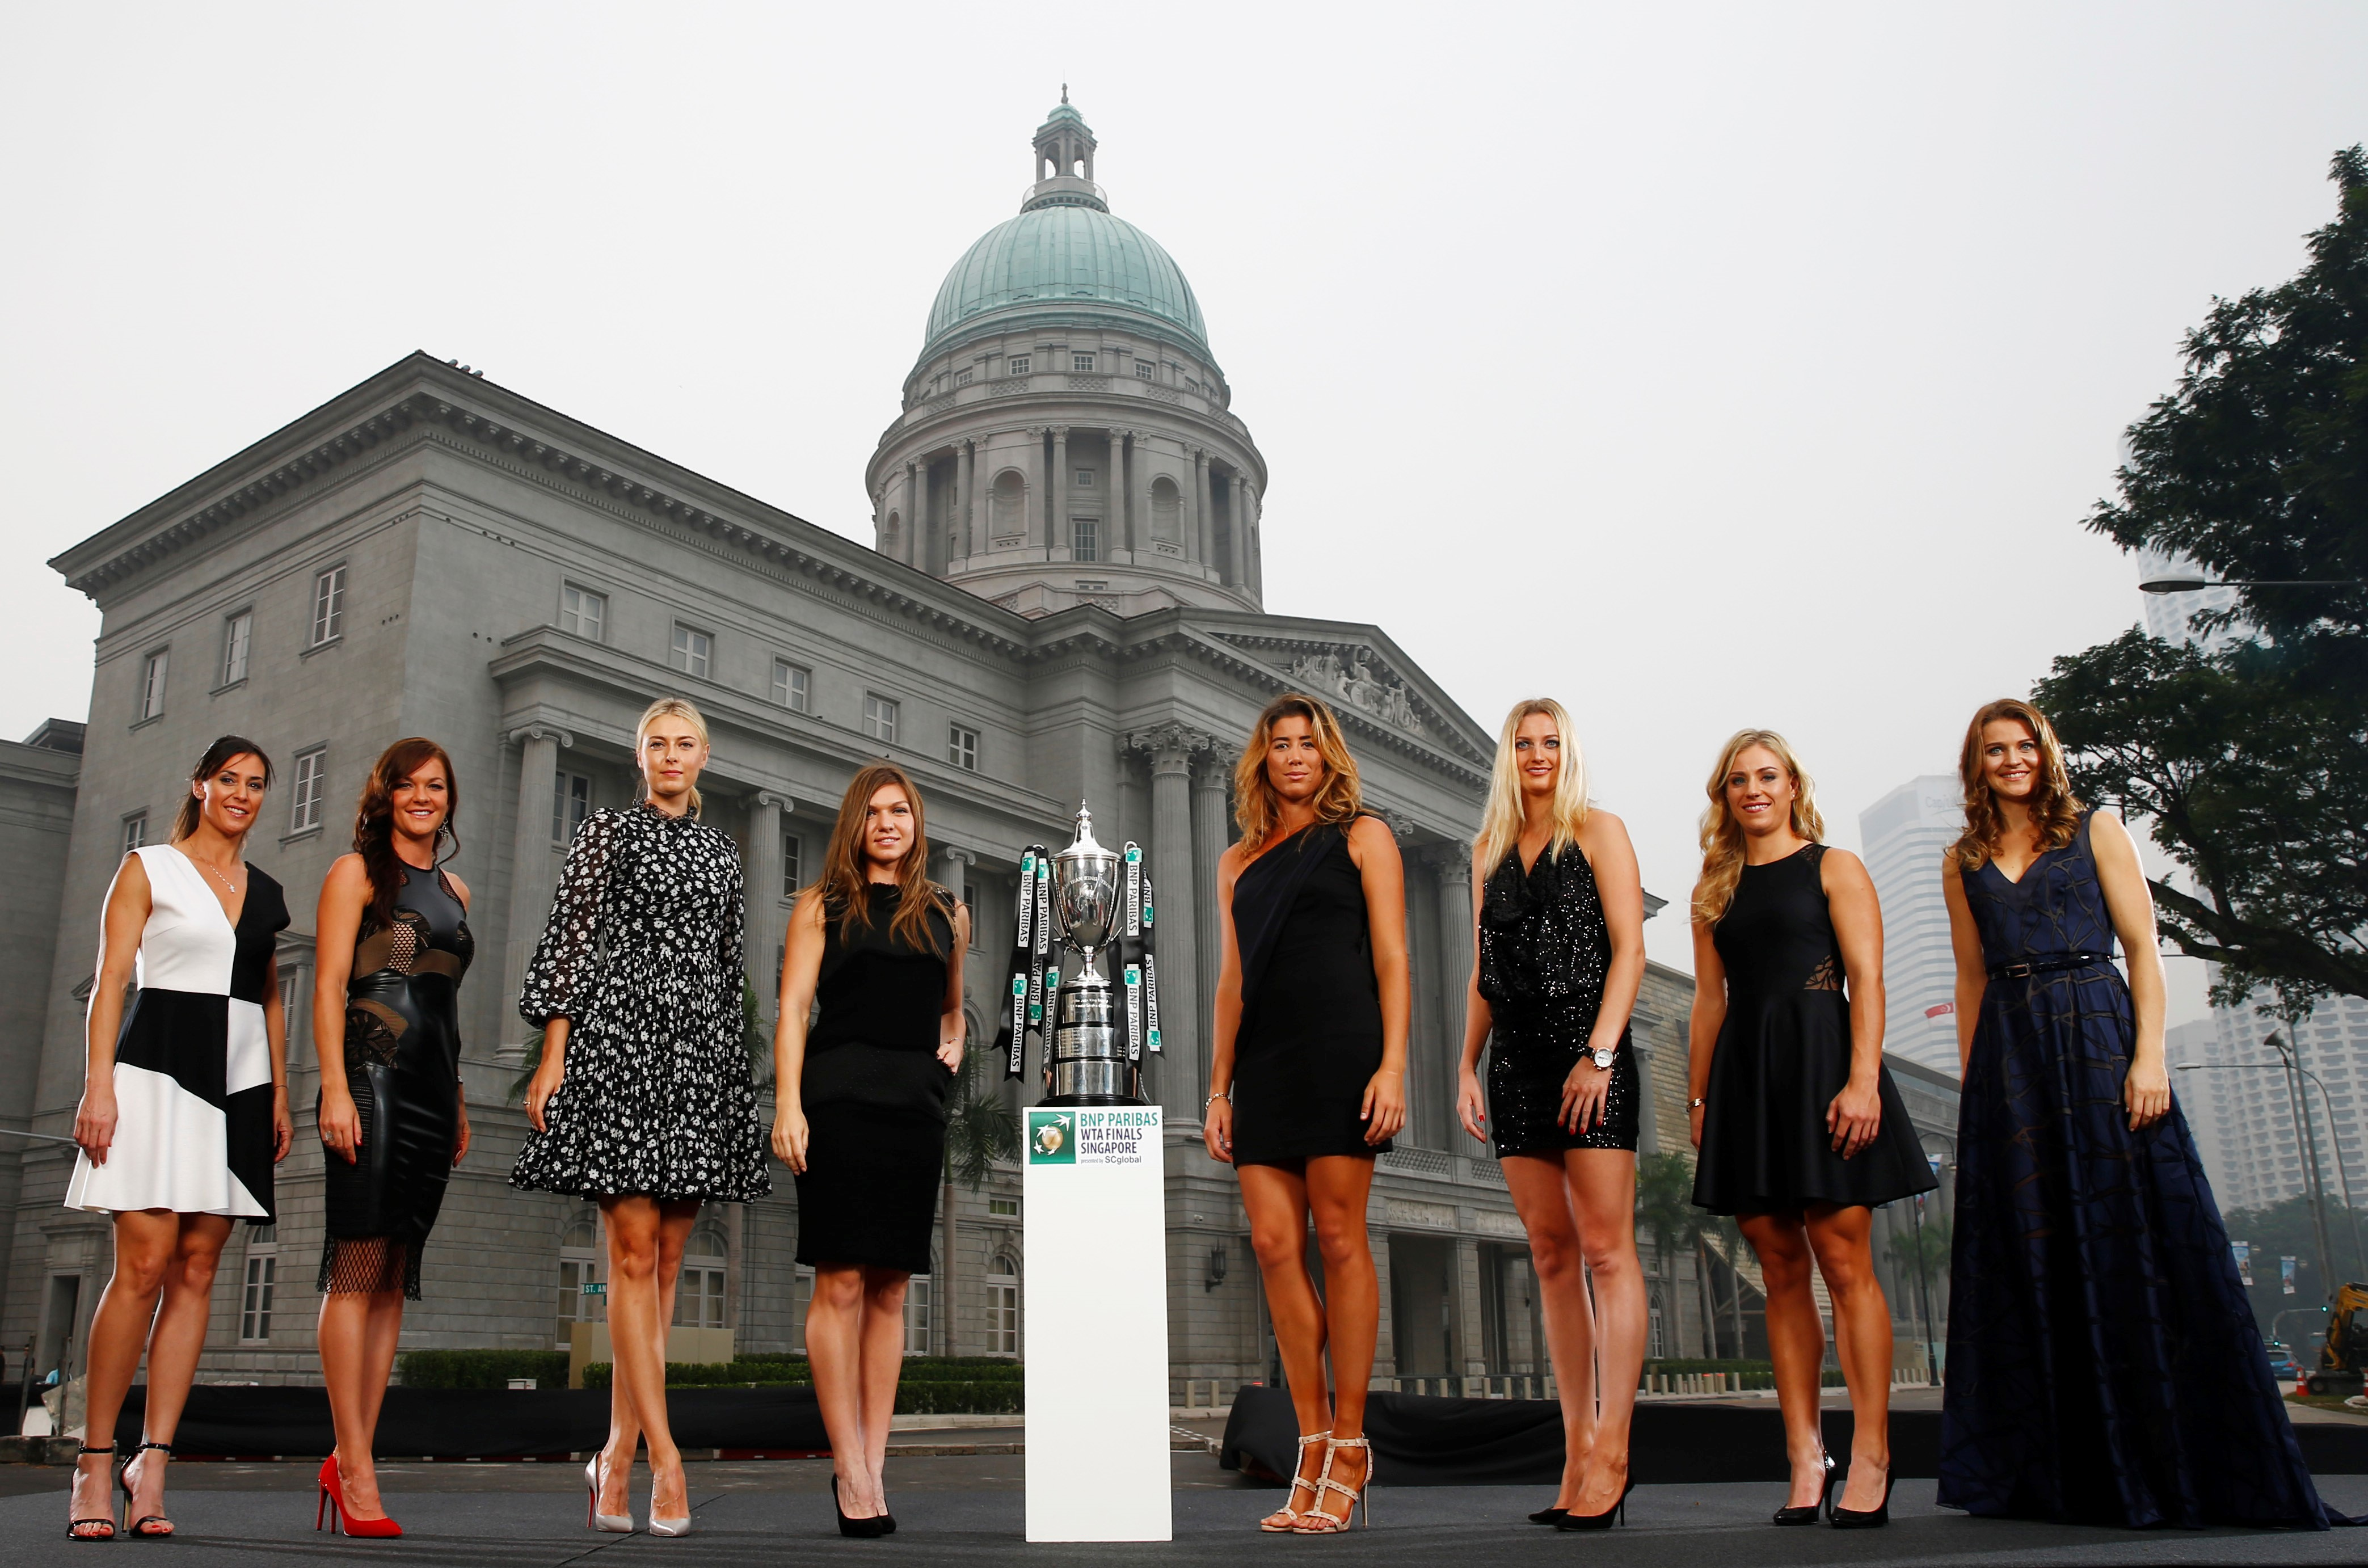 2015wtafinals_iconicphotos.jpg